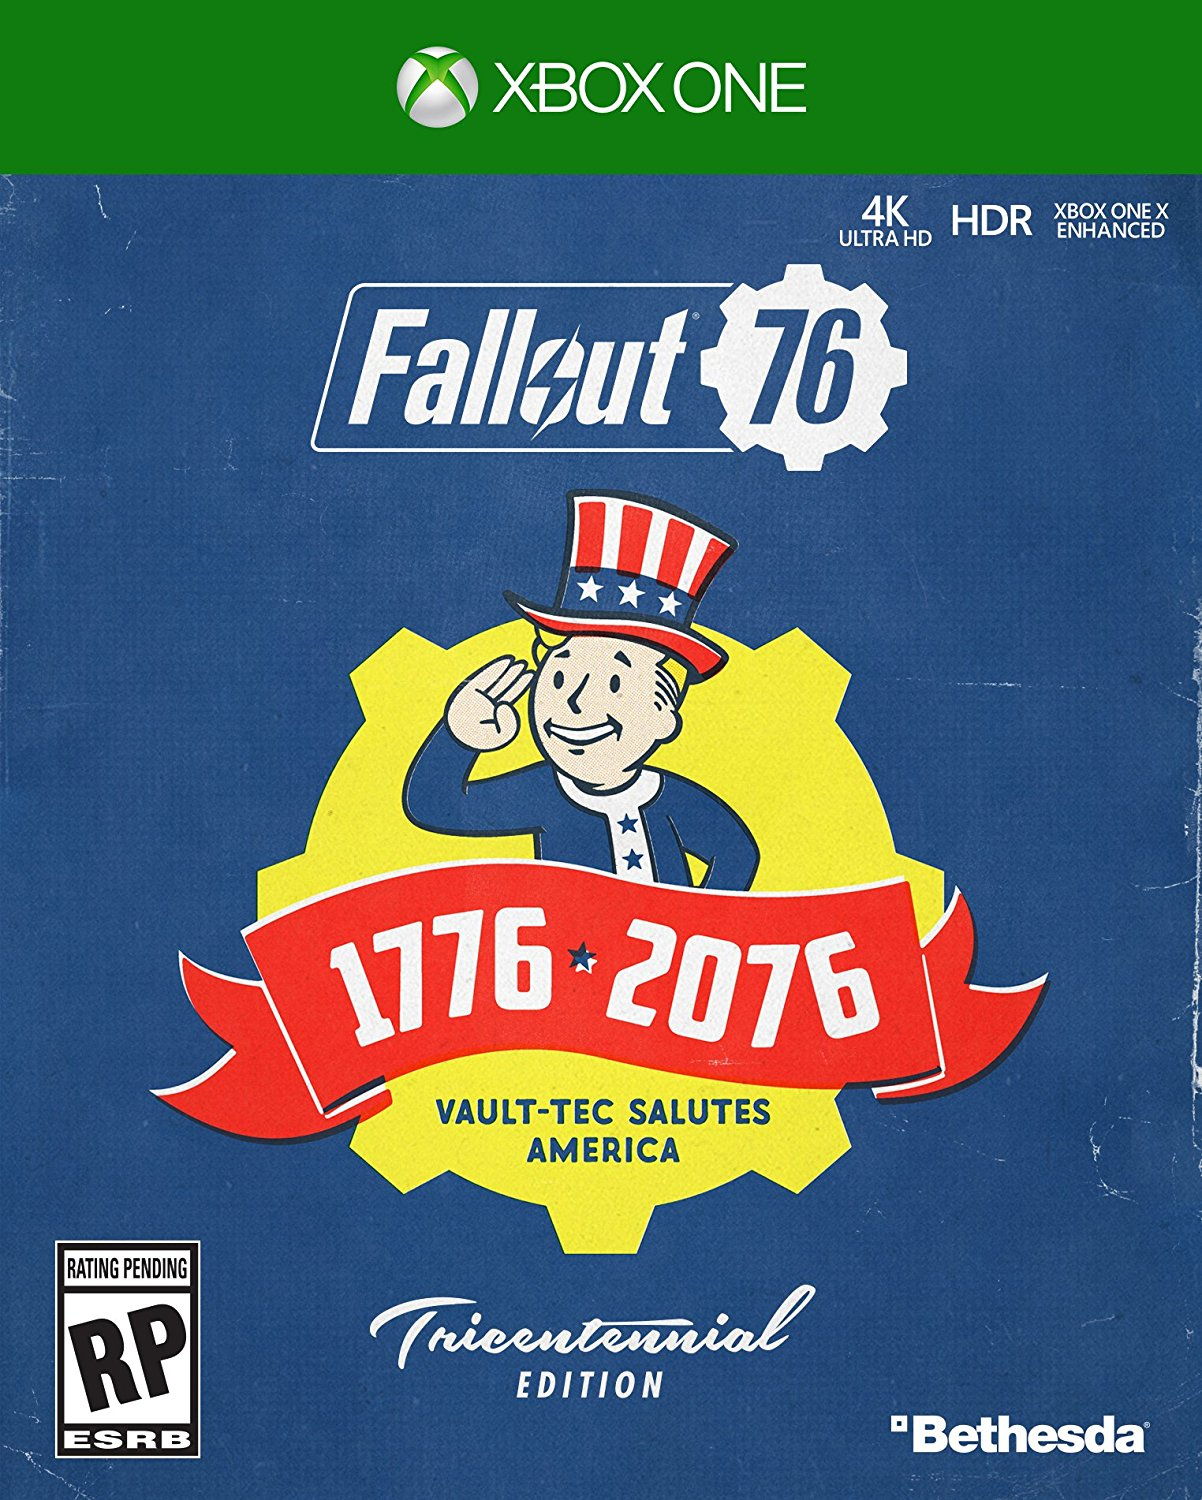 Fallout 76 Deluxe Edition, Xbox One, Bethesda, 00093155173101 by Bethesda